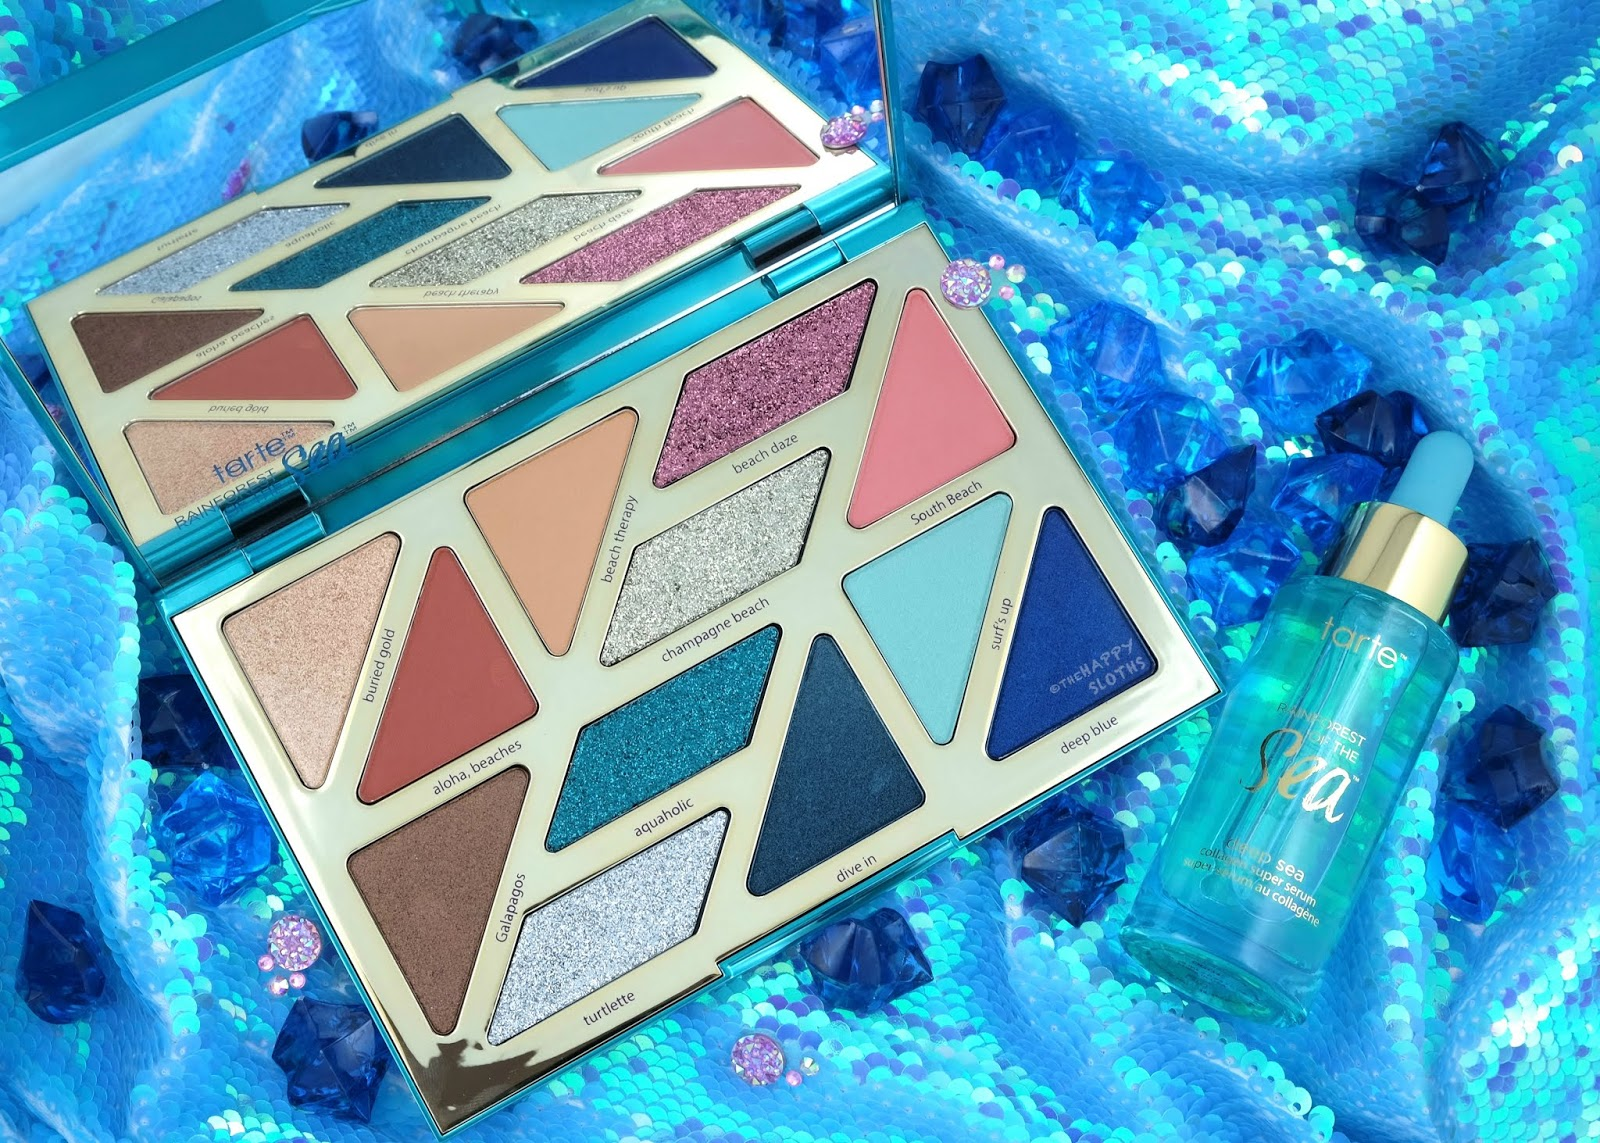 Tarte | Rainforest of the Sea High Tides & Good Vibes Eyeshadow Palette & Deep Sea Collagen Super Serum: Review and Swatches